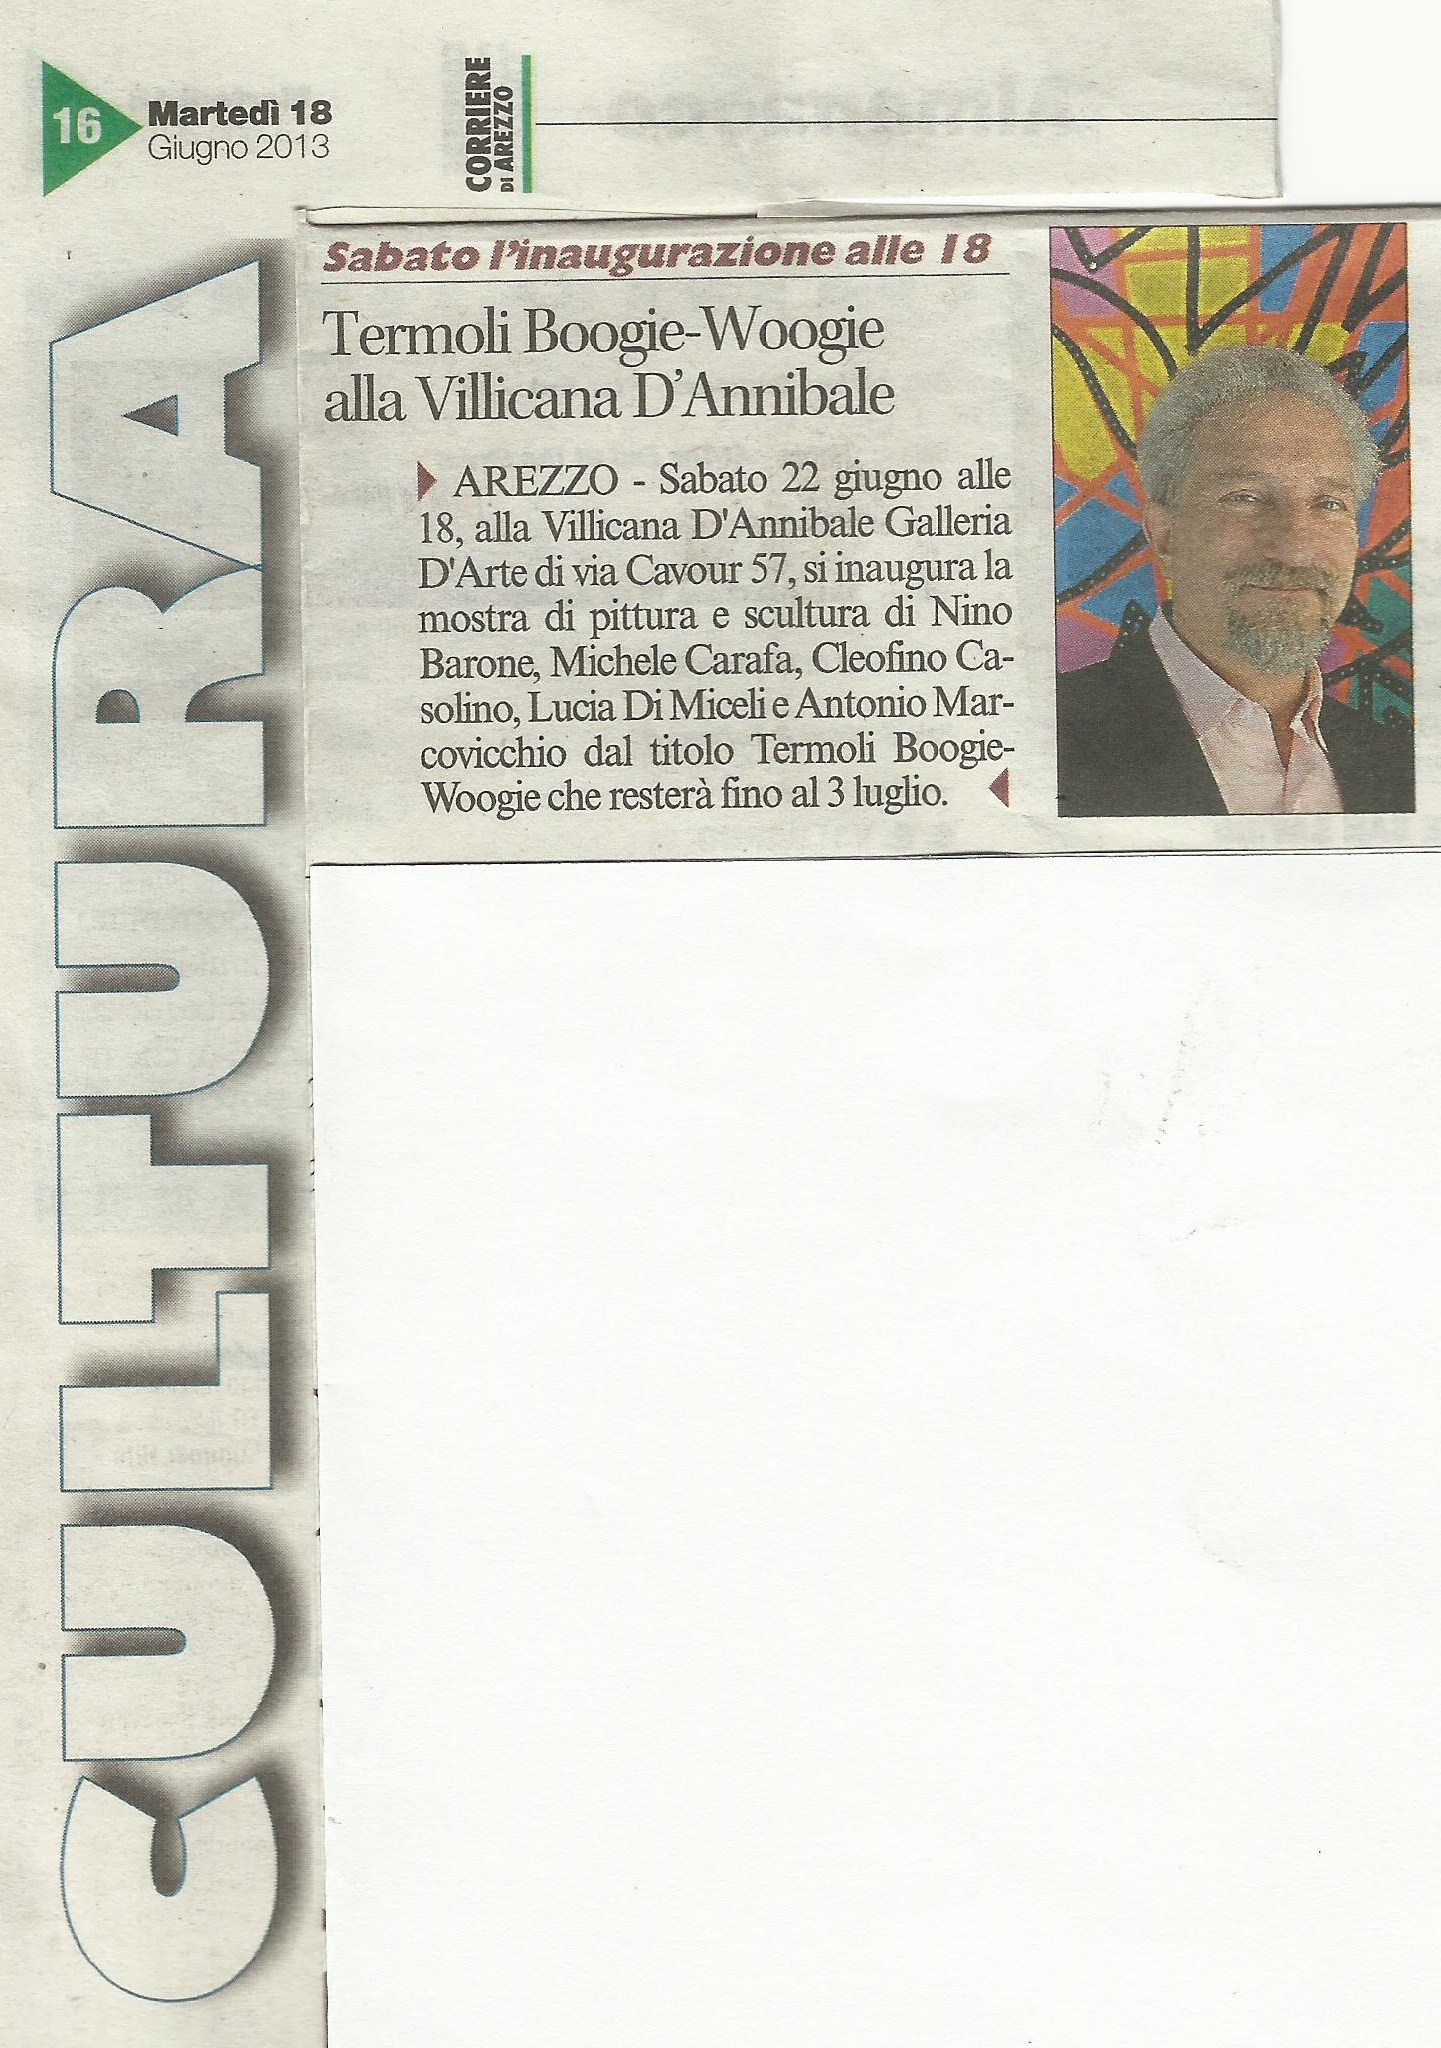 CORRIERE DI AREZZO: Boogie Woogie